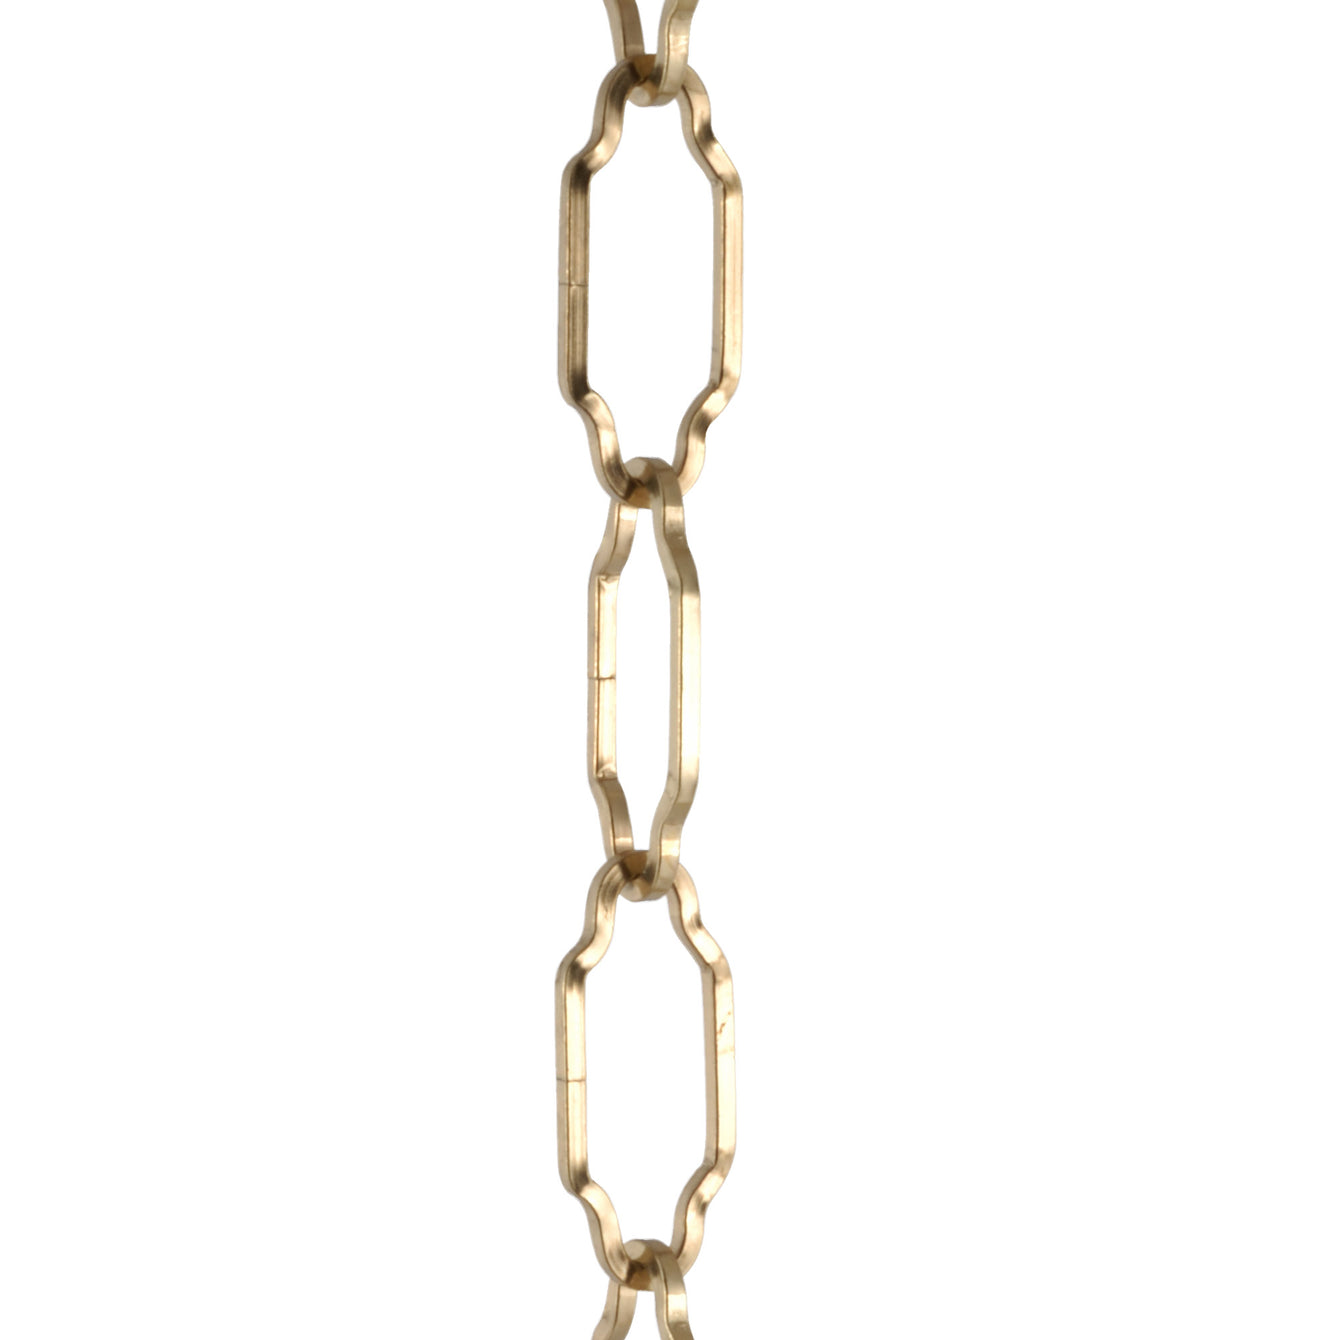 ElekTek Gothic Open Link Chain for Chandelier & Lighting 45mm x 19mm Per Linear Metre - Buy It Better Antique Brass